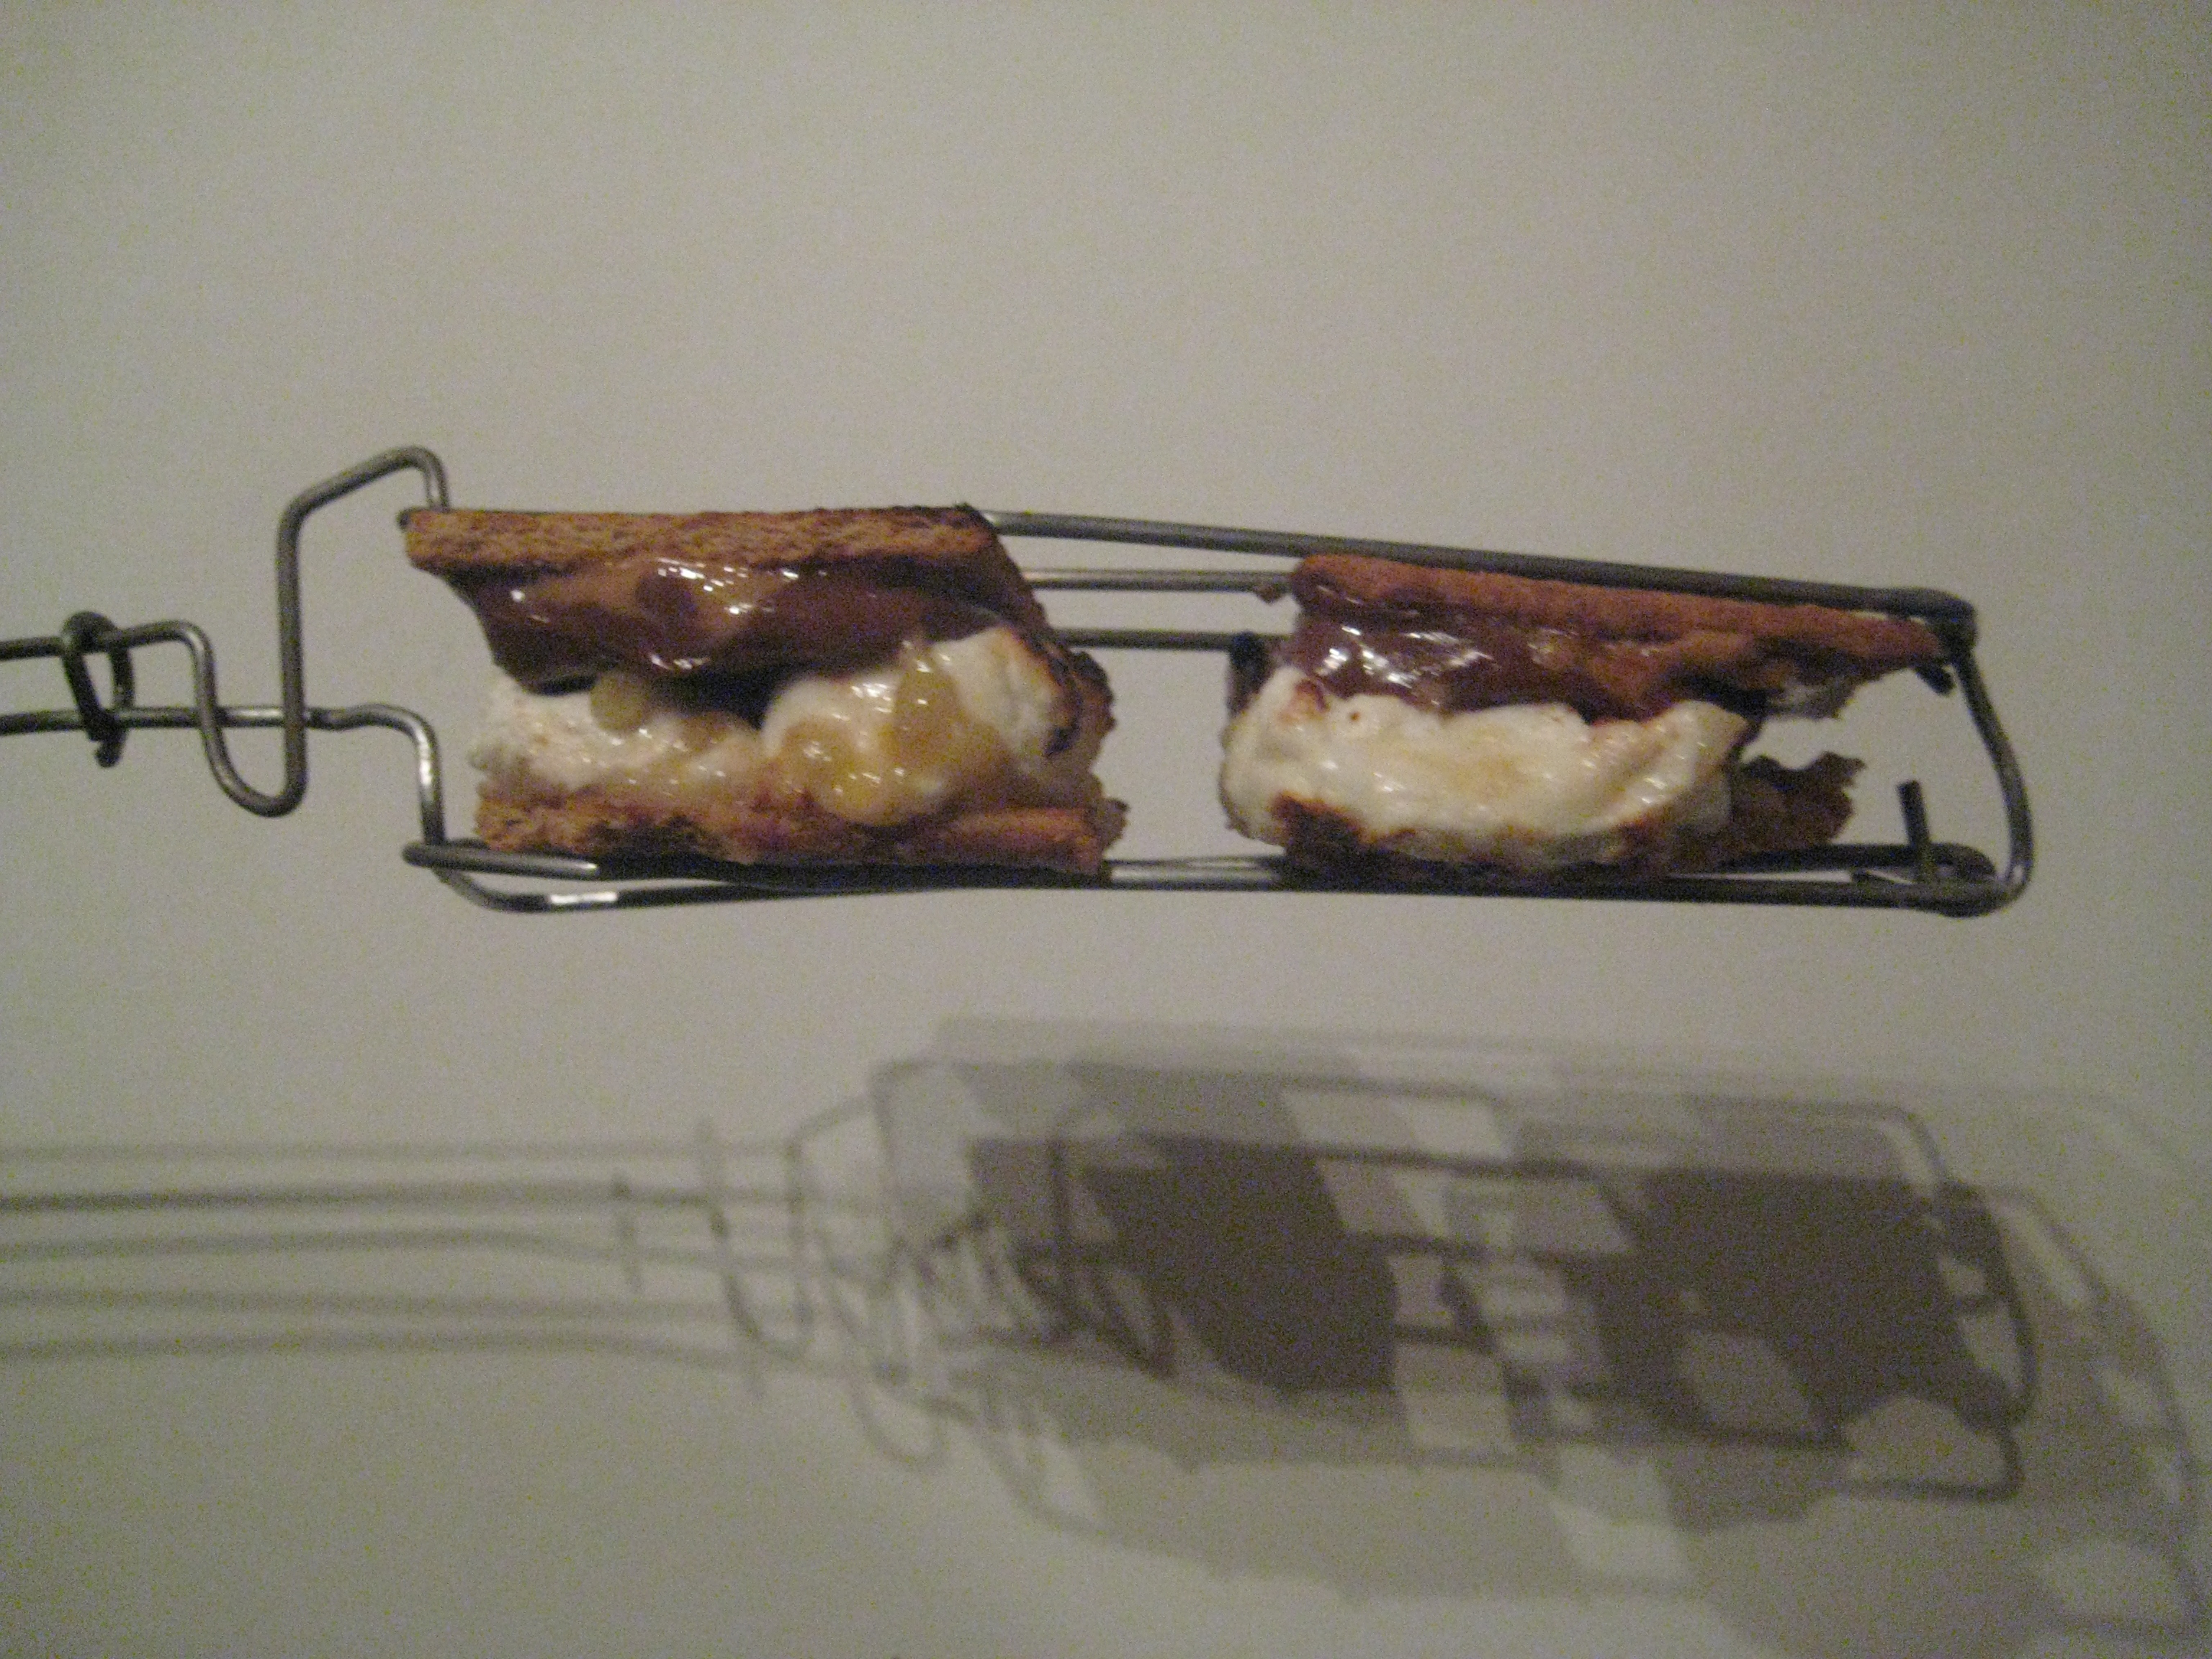 Smores Grilling Tongs from Wire Clothes Hangers